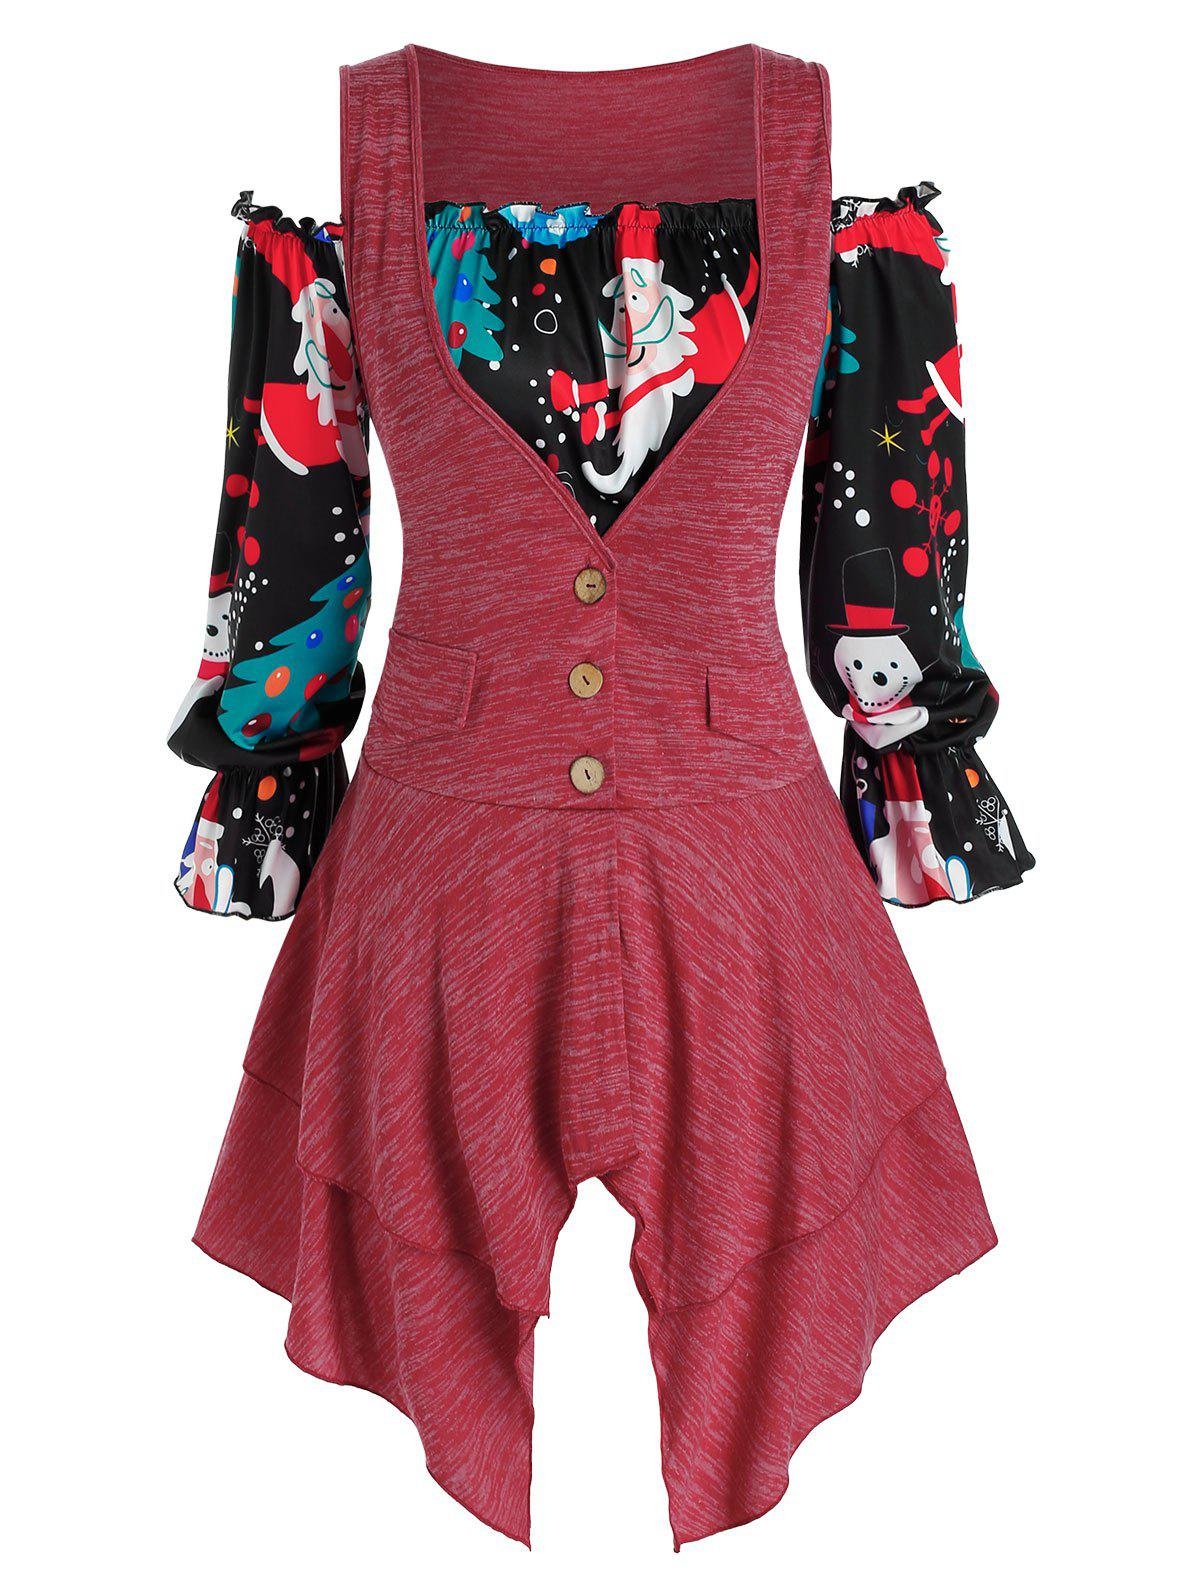 Best Plus Size Christmas Claus Top and Handkerchief Tank Top Set